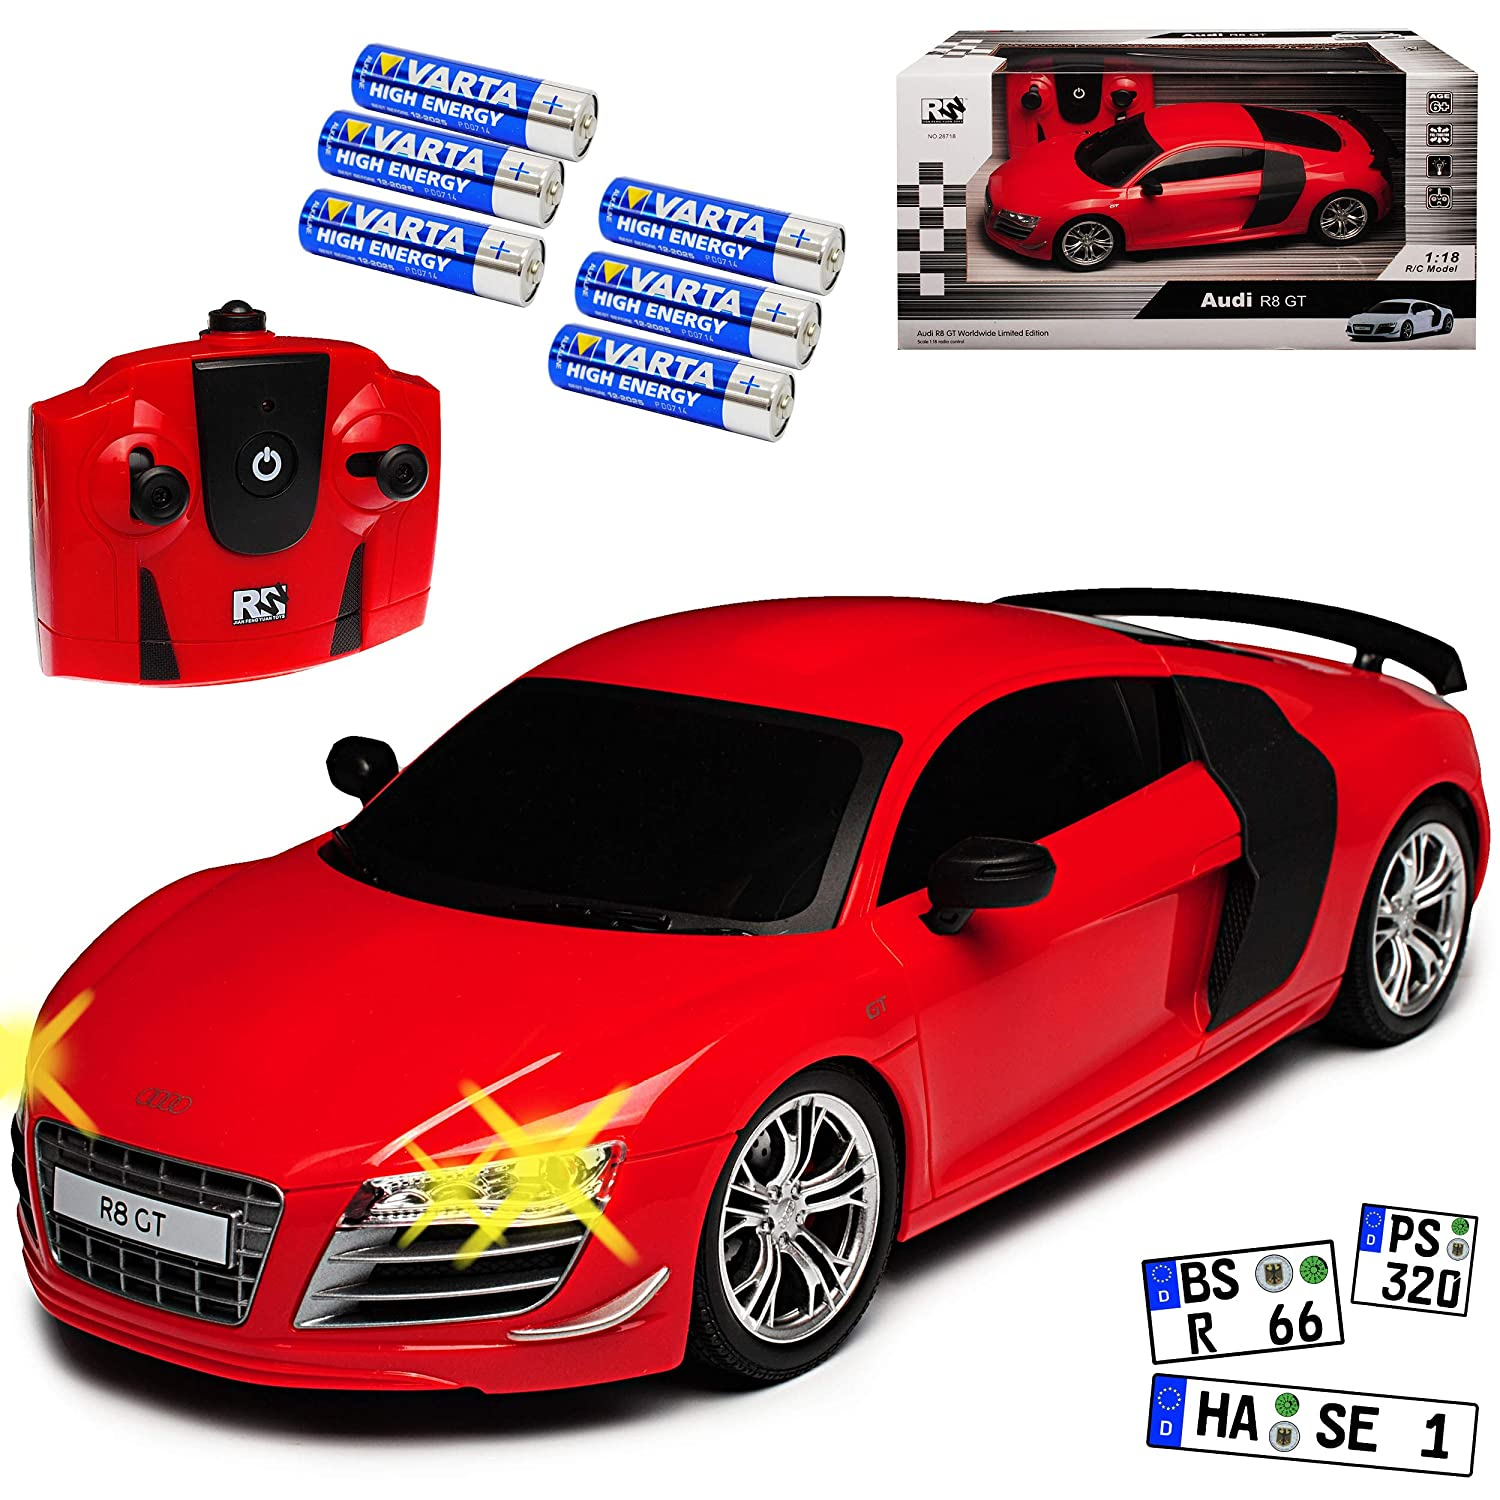 Audi R8 GT 42 Coupe Rot 2006-2015 RC Funkauto - inkl. Batterien - sofort startklar 1/18 Modell Auto